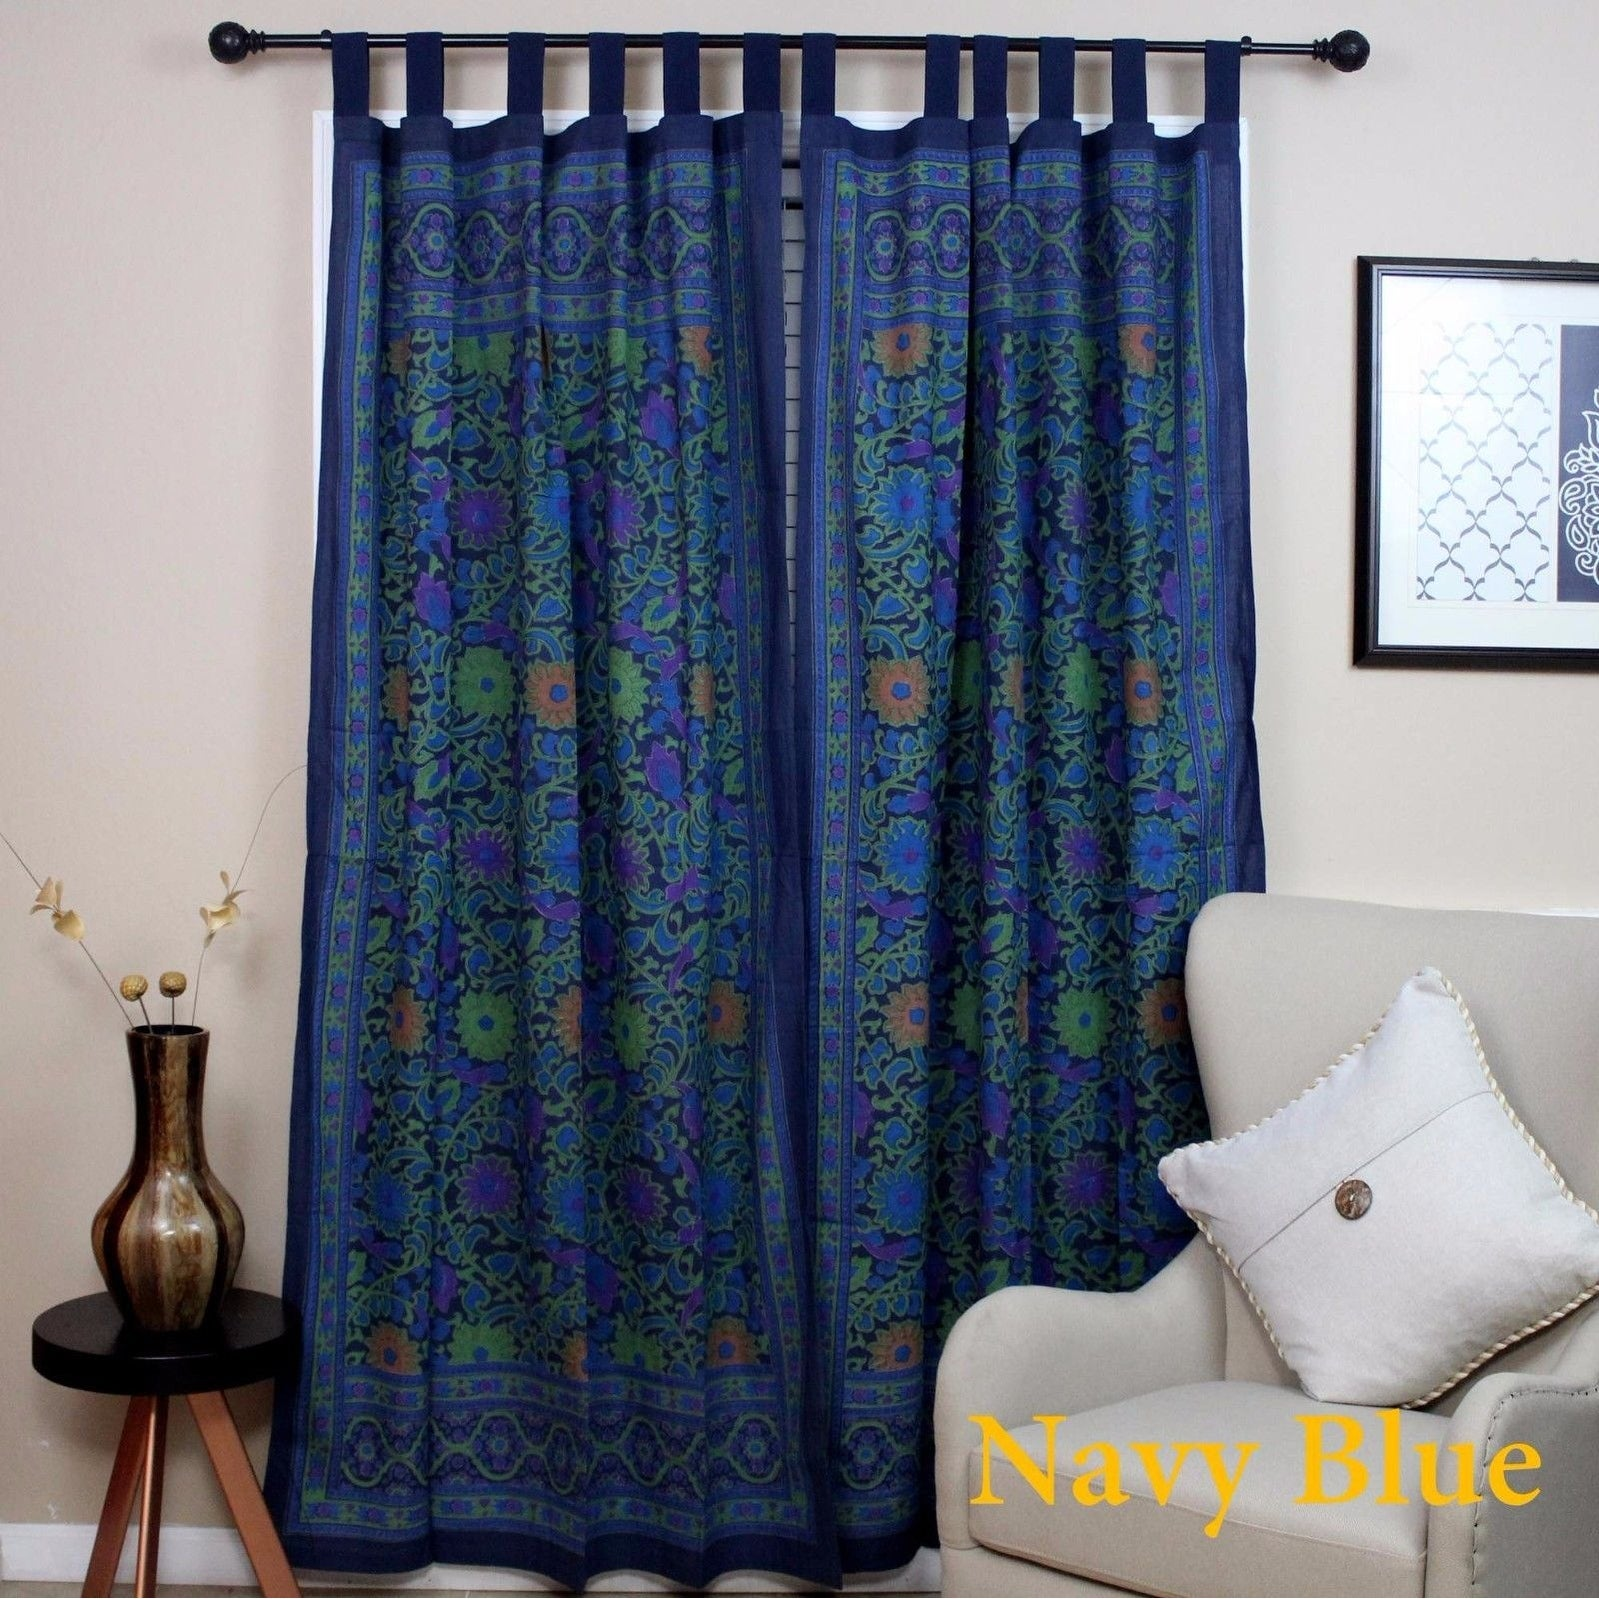 Out of Stock blue gray Handmade 100% Cotton Sunflower Floral Tab Top Curtain  Drape Door Panel Navy Blue Gray Yellow